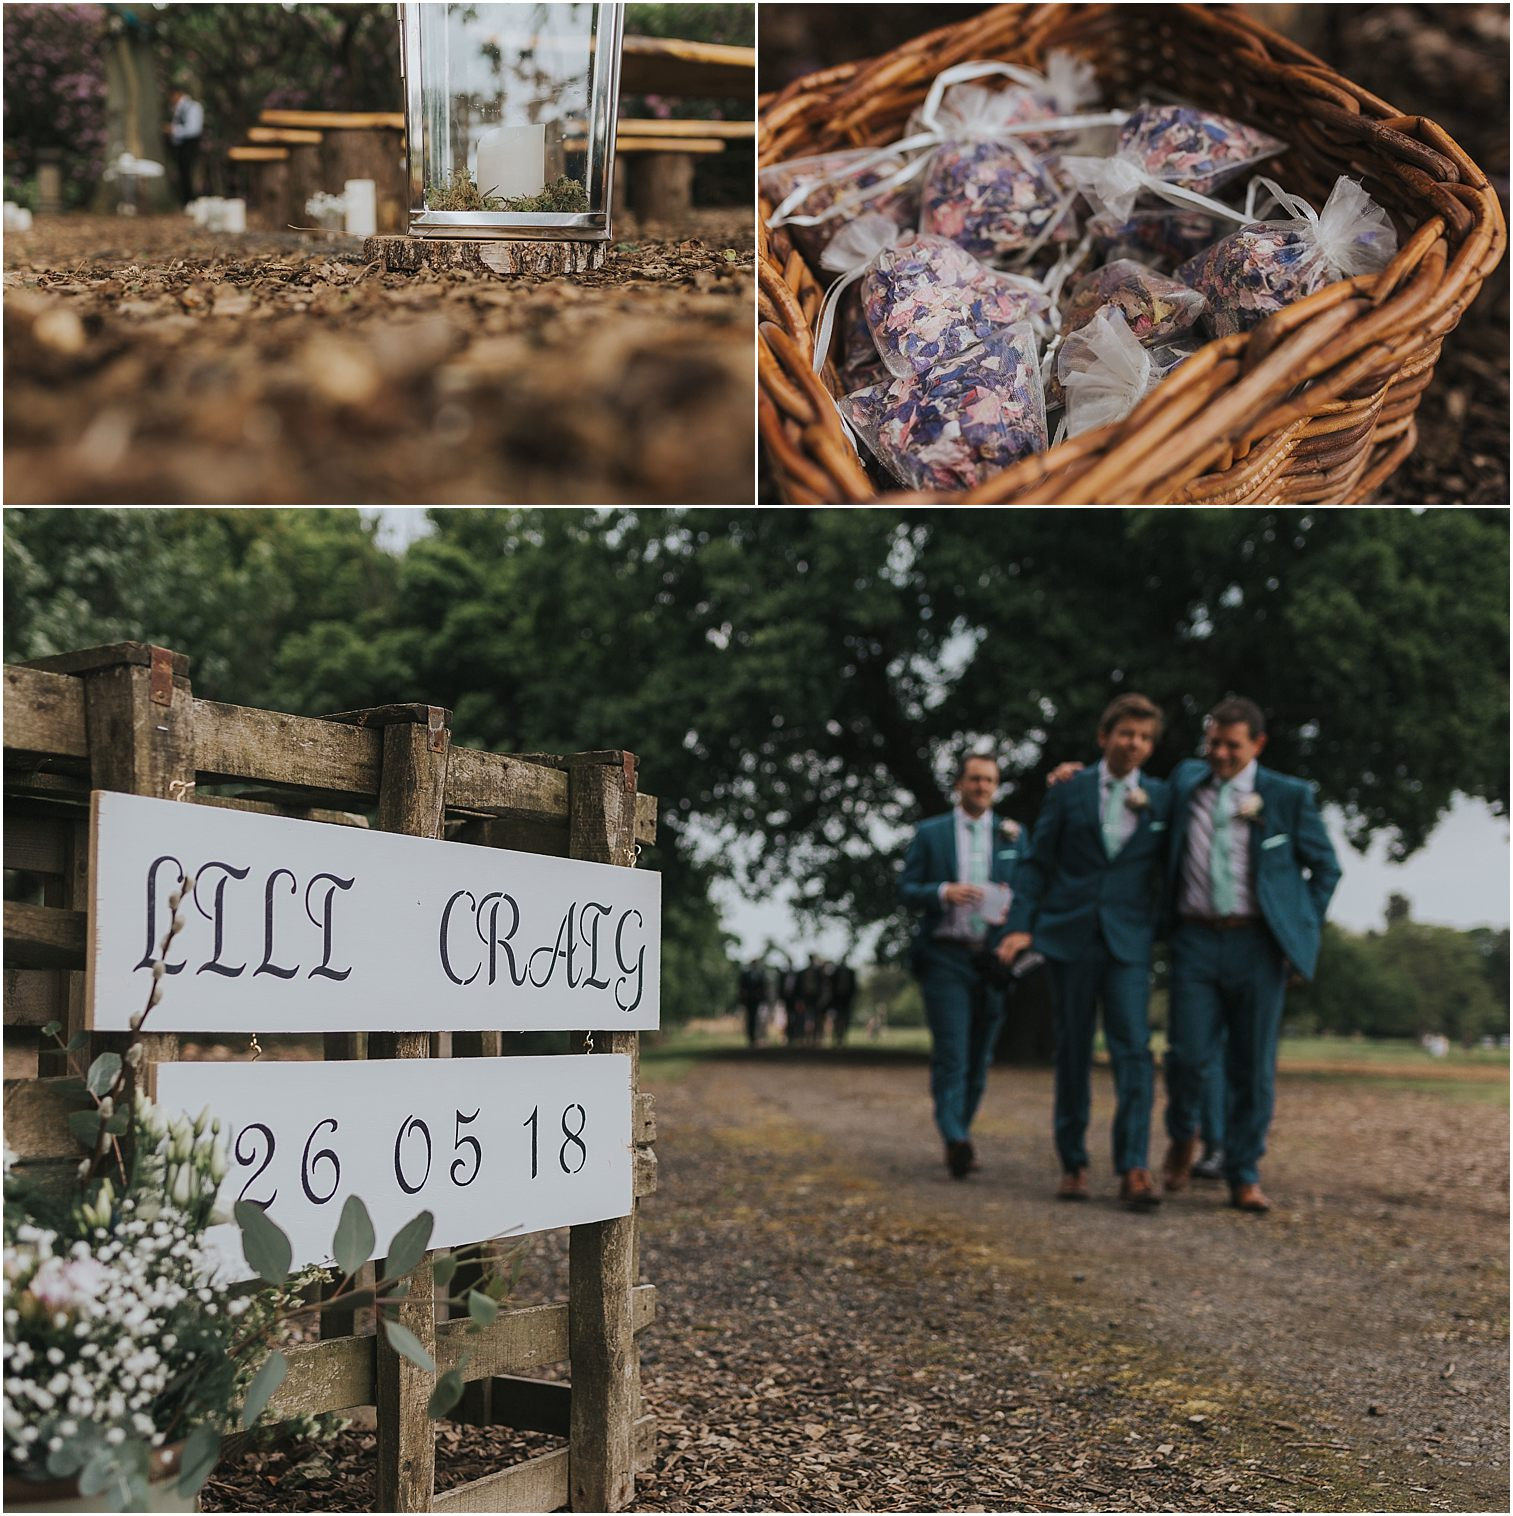 Details of an Escrick Park Wedding including signs and confetti